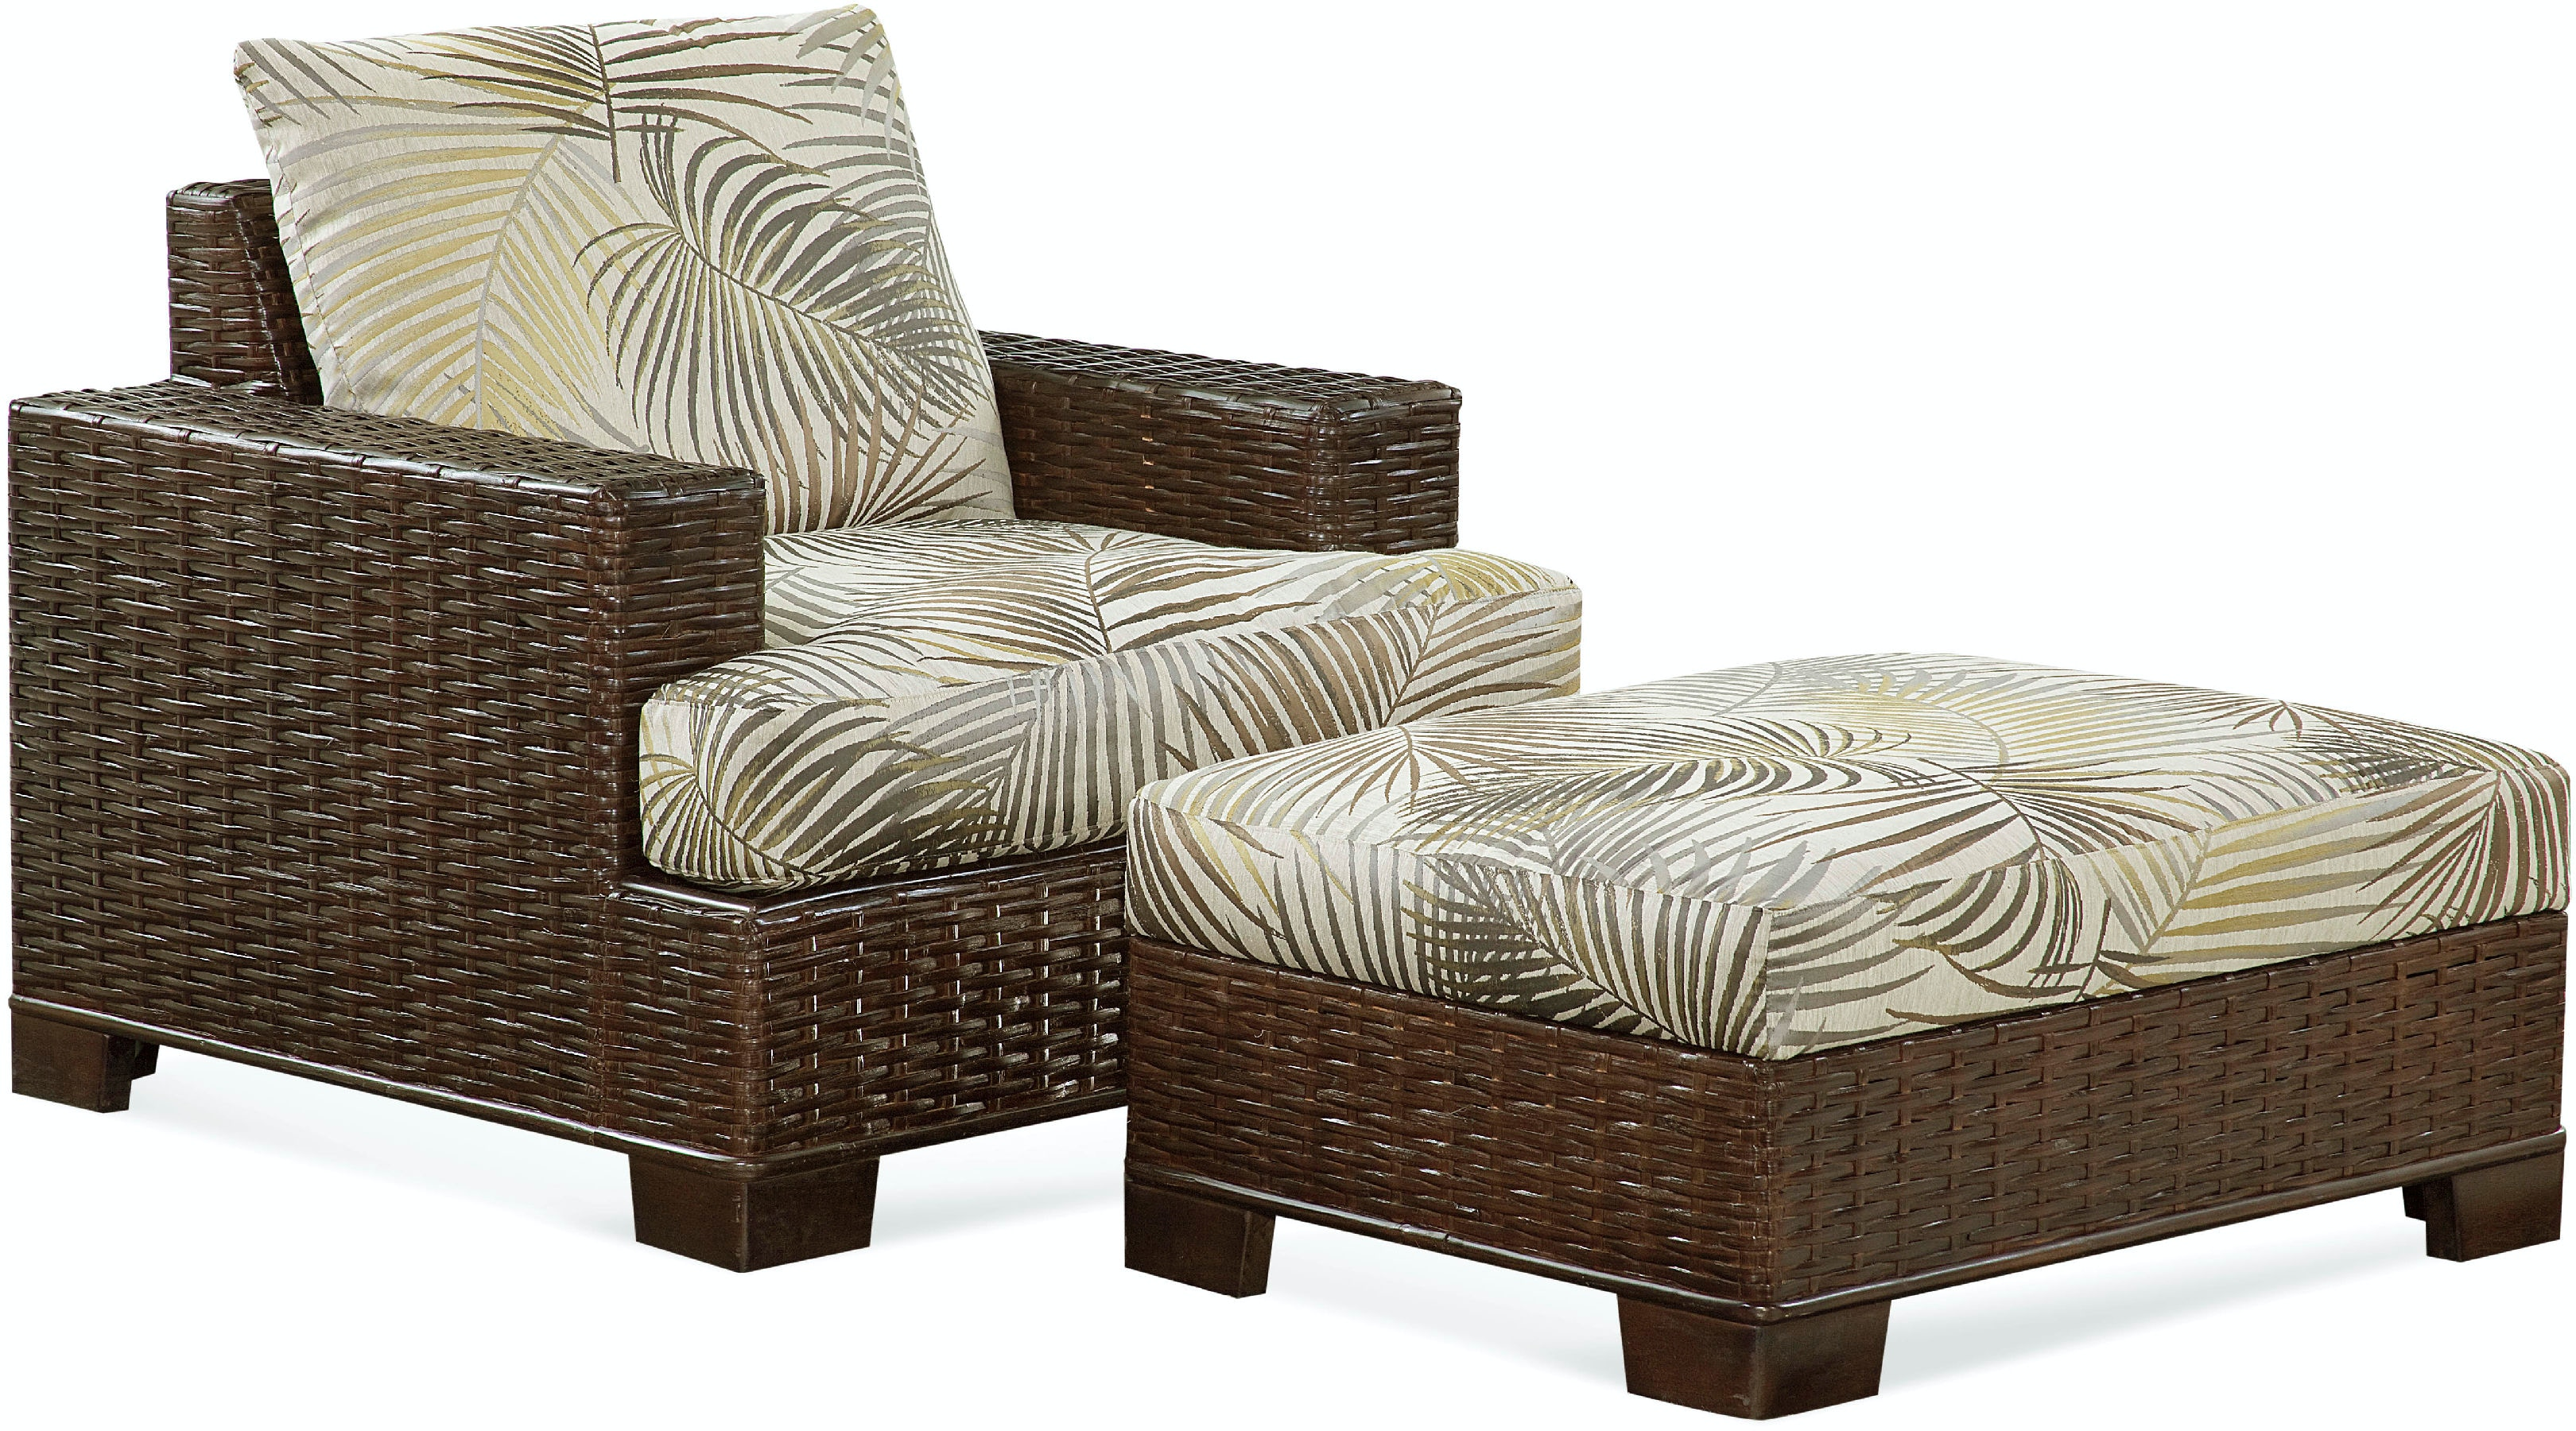 Braxton Culler Living Room Chair 932 001 Seaside